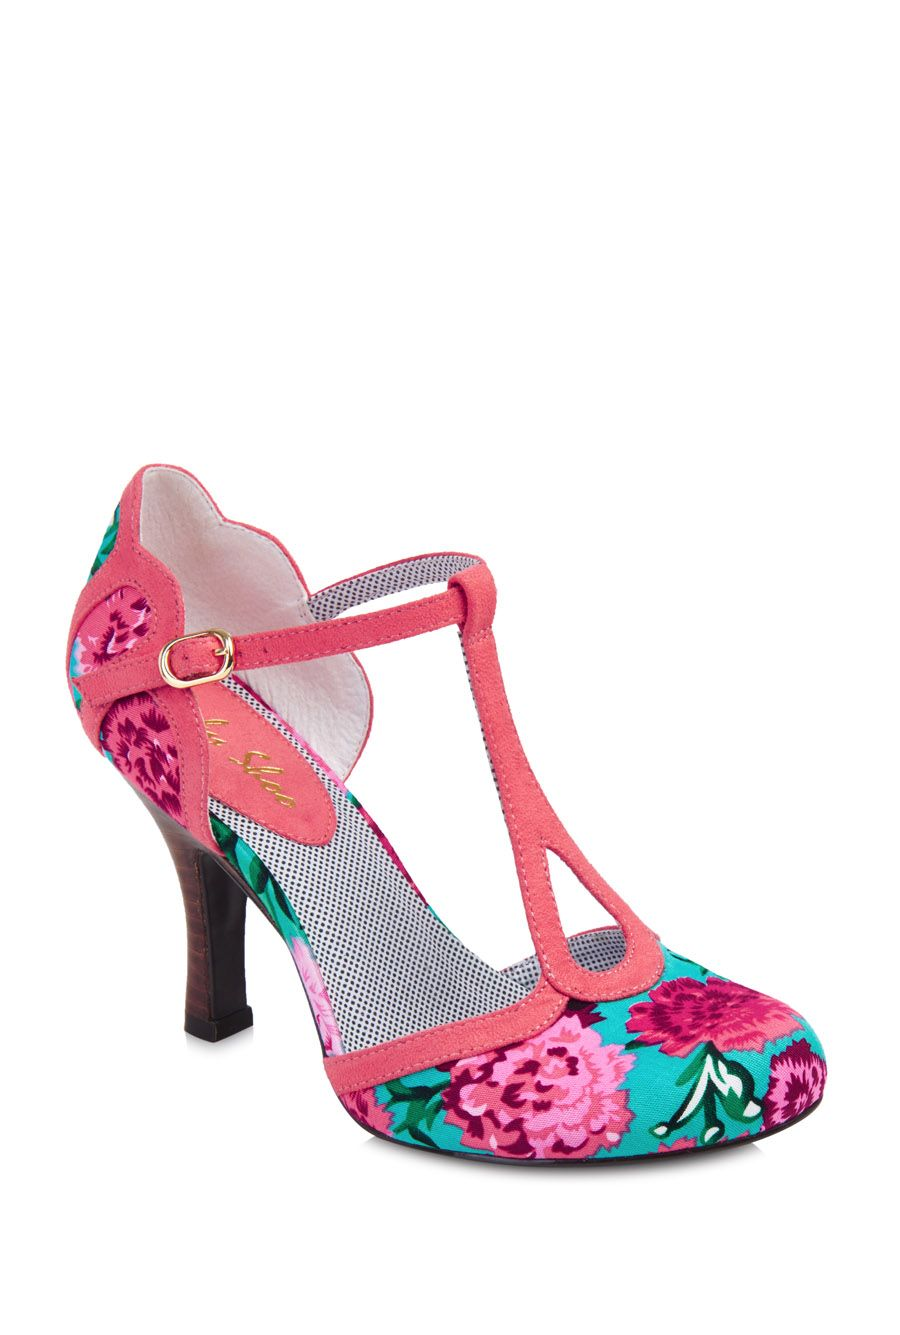 733b0d0c Ruby Shoo Polly Coral Heeled Shoe | clothes | Shoes, Coral heels ...